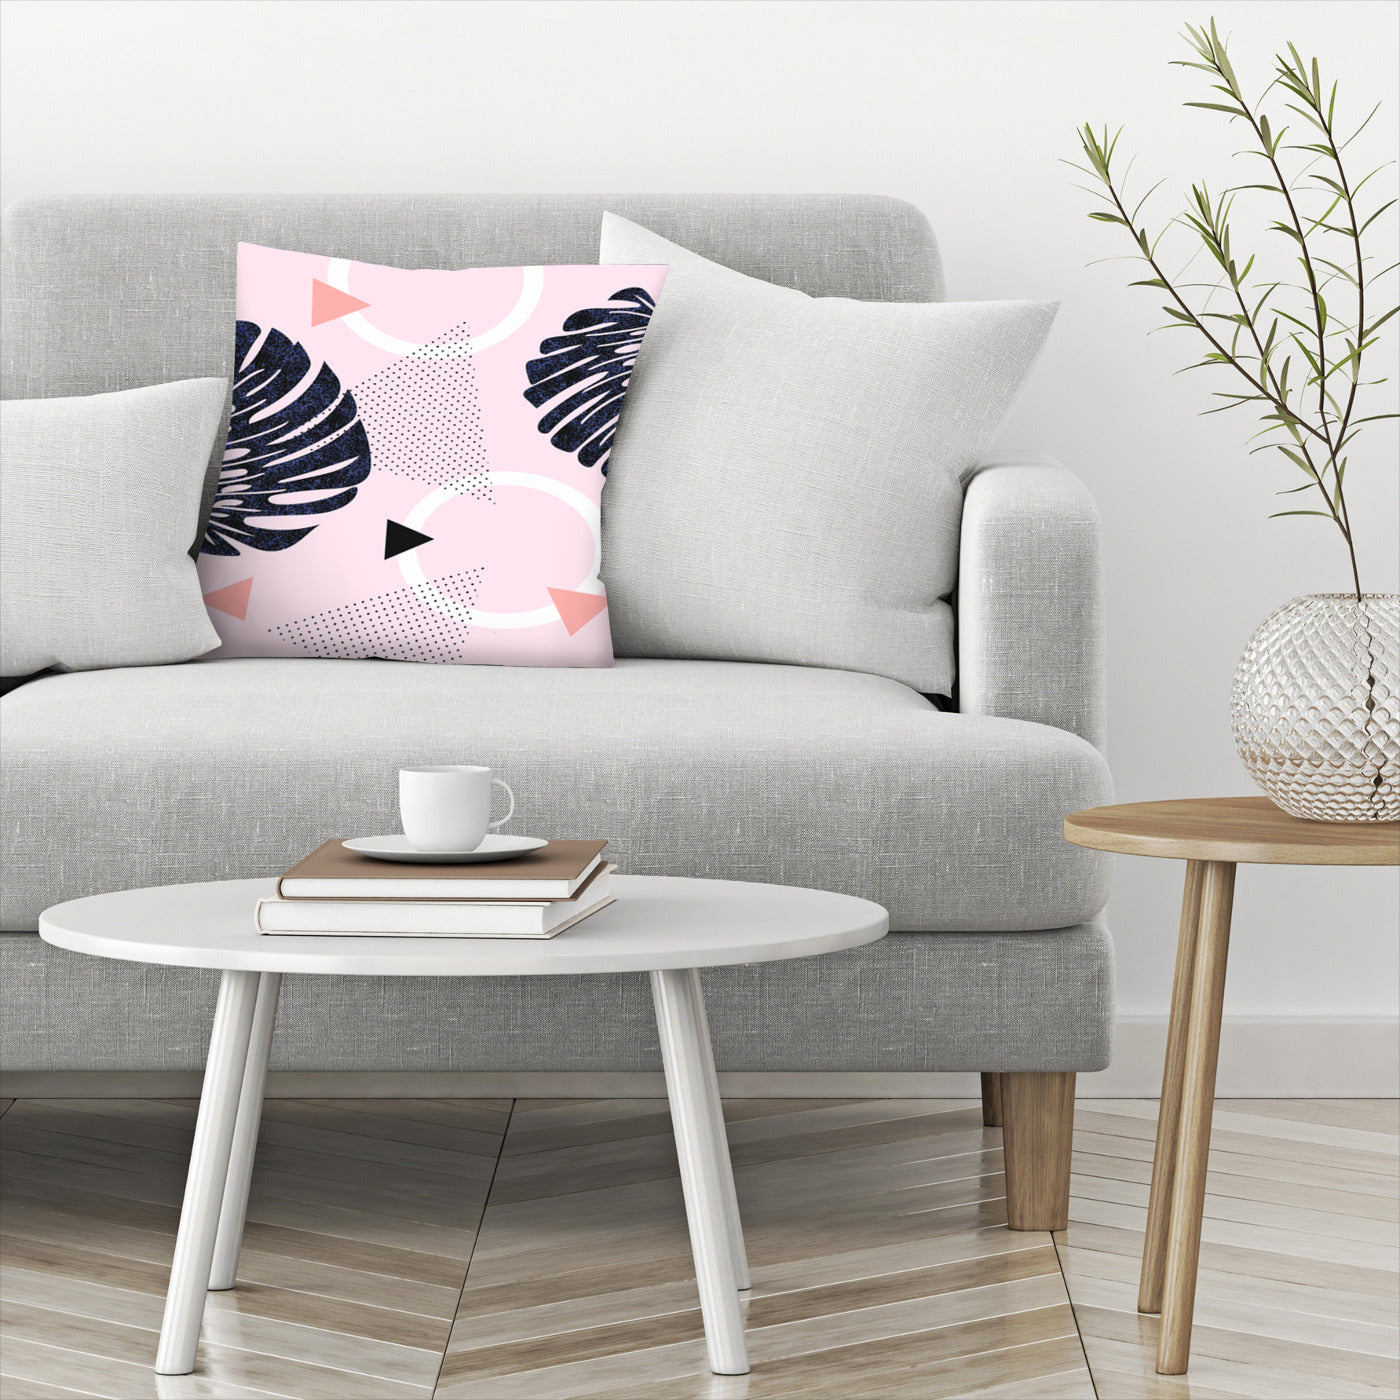 Shiny Monsteras On Pink by Emanuela Carratoni Decorative Pillow - Decorative Pillow - Americanflat